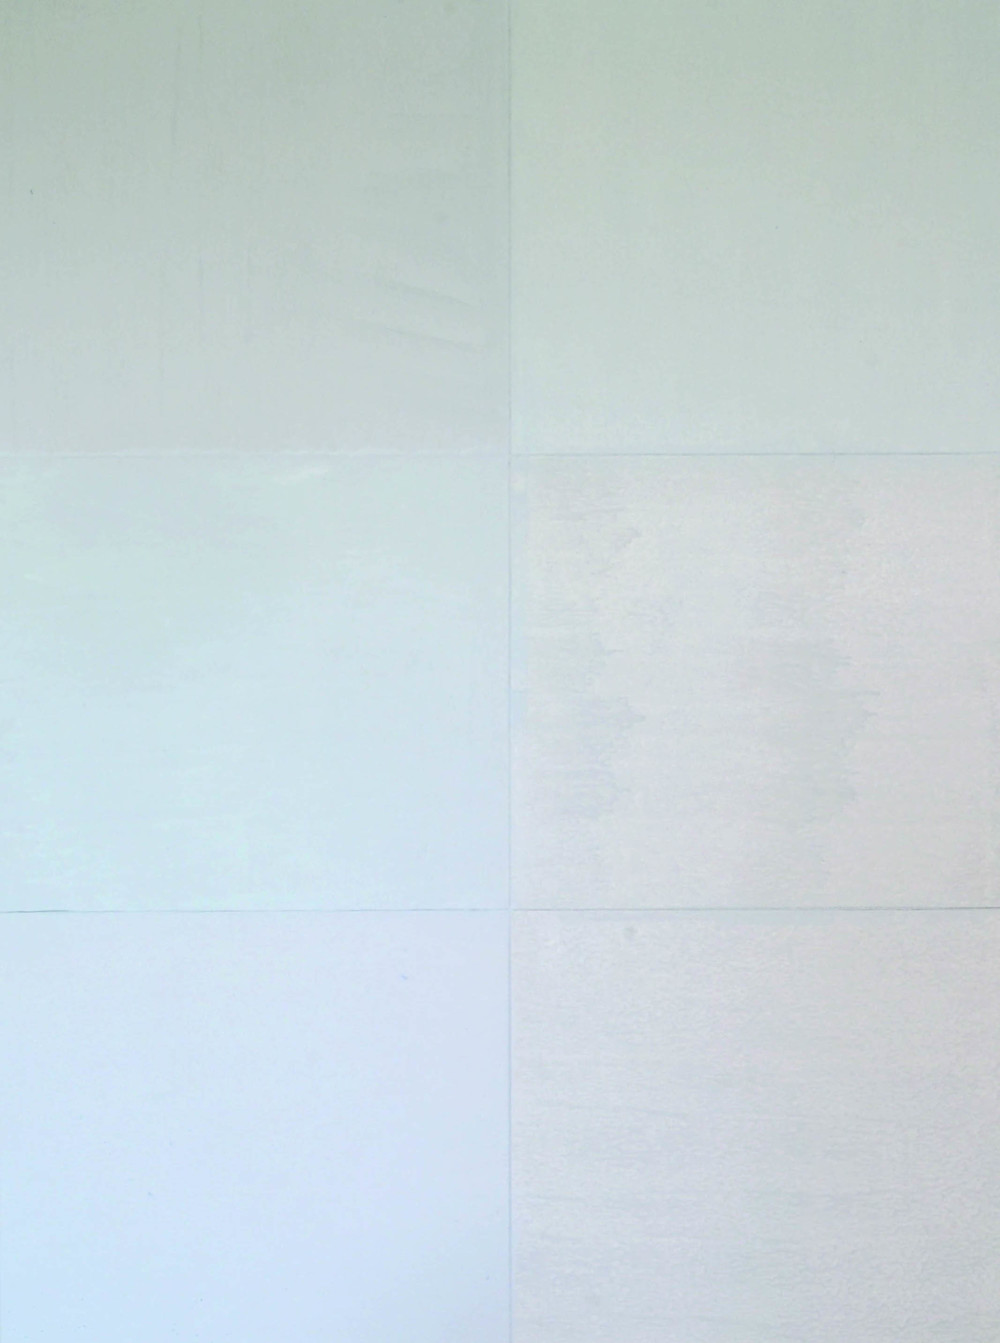 sam Fryer, Untitled Light Grid 1, 2014, Acrylic on Canvas, 30 x 40 in.jpg